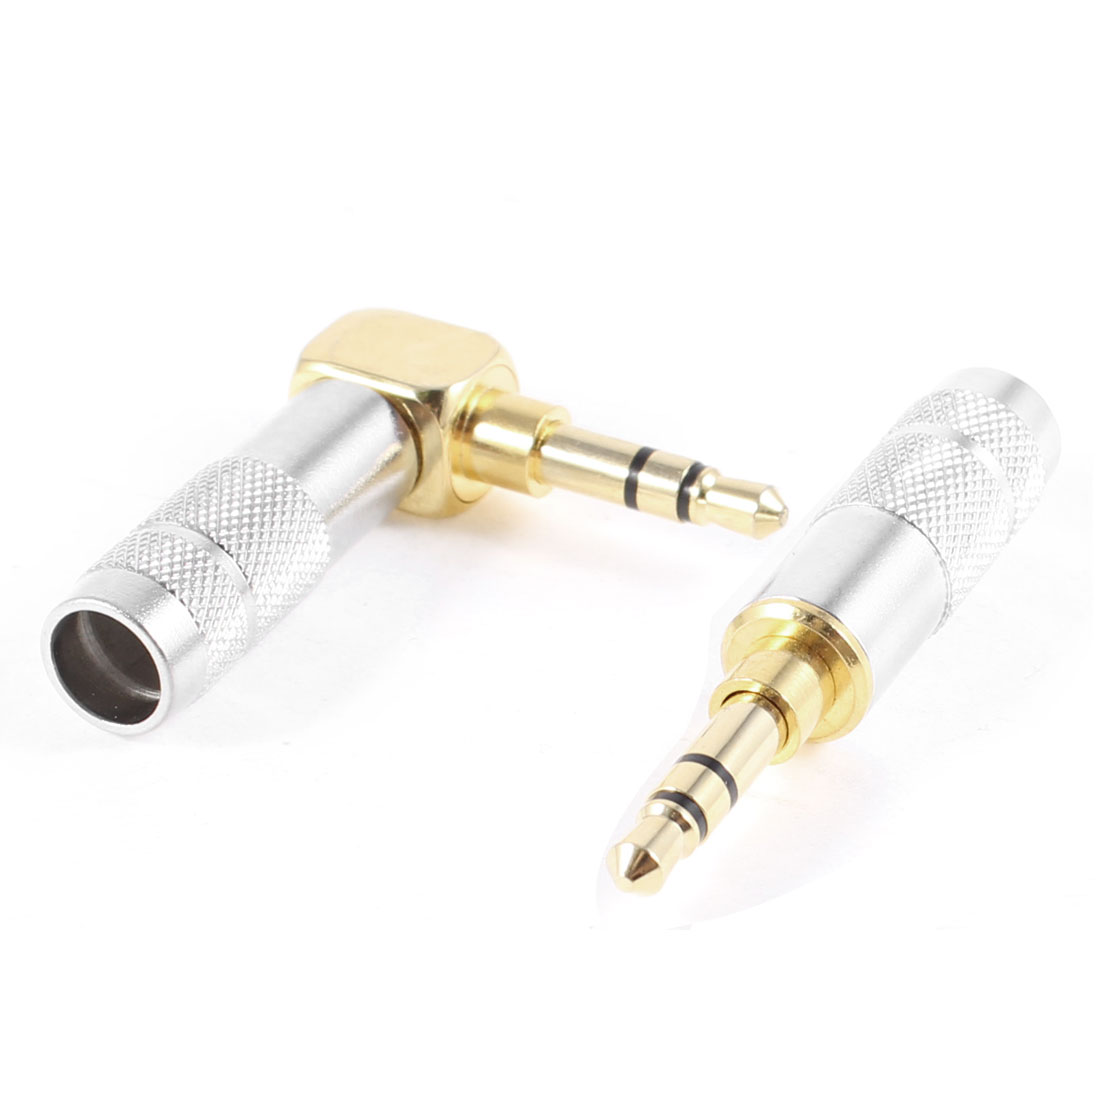 2 Pcs Right Angled Straight 3.5mm Male Two Tone Metal Audio Adapter Converter